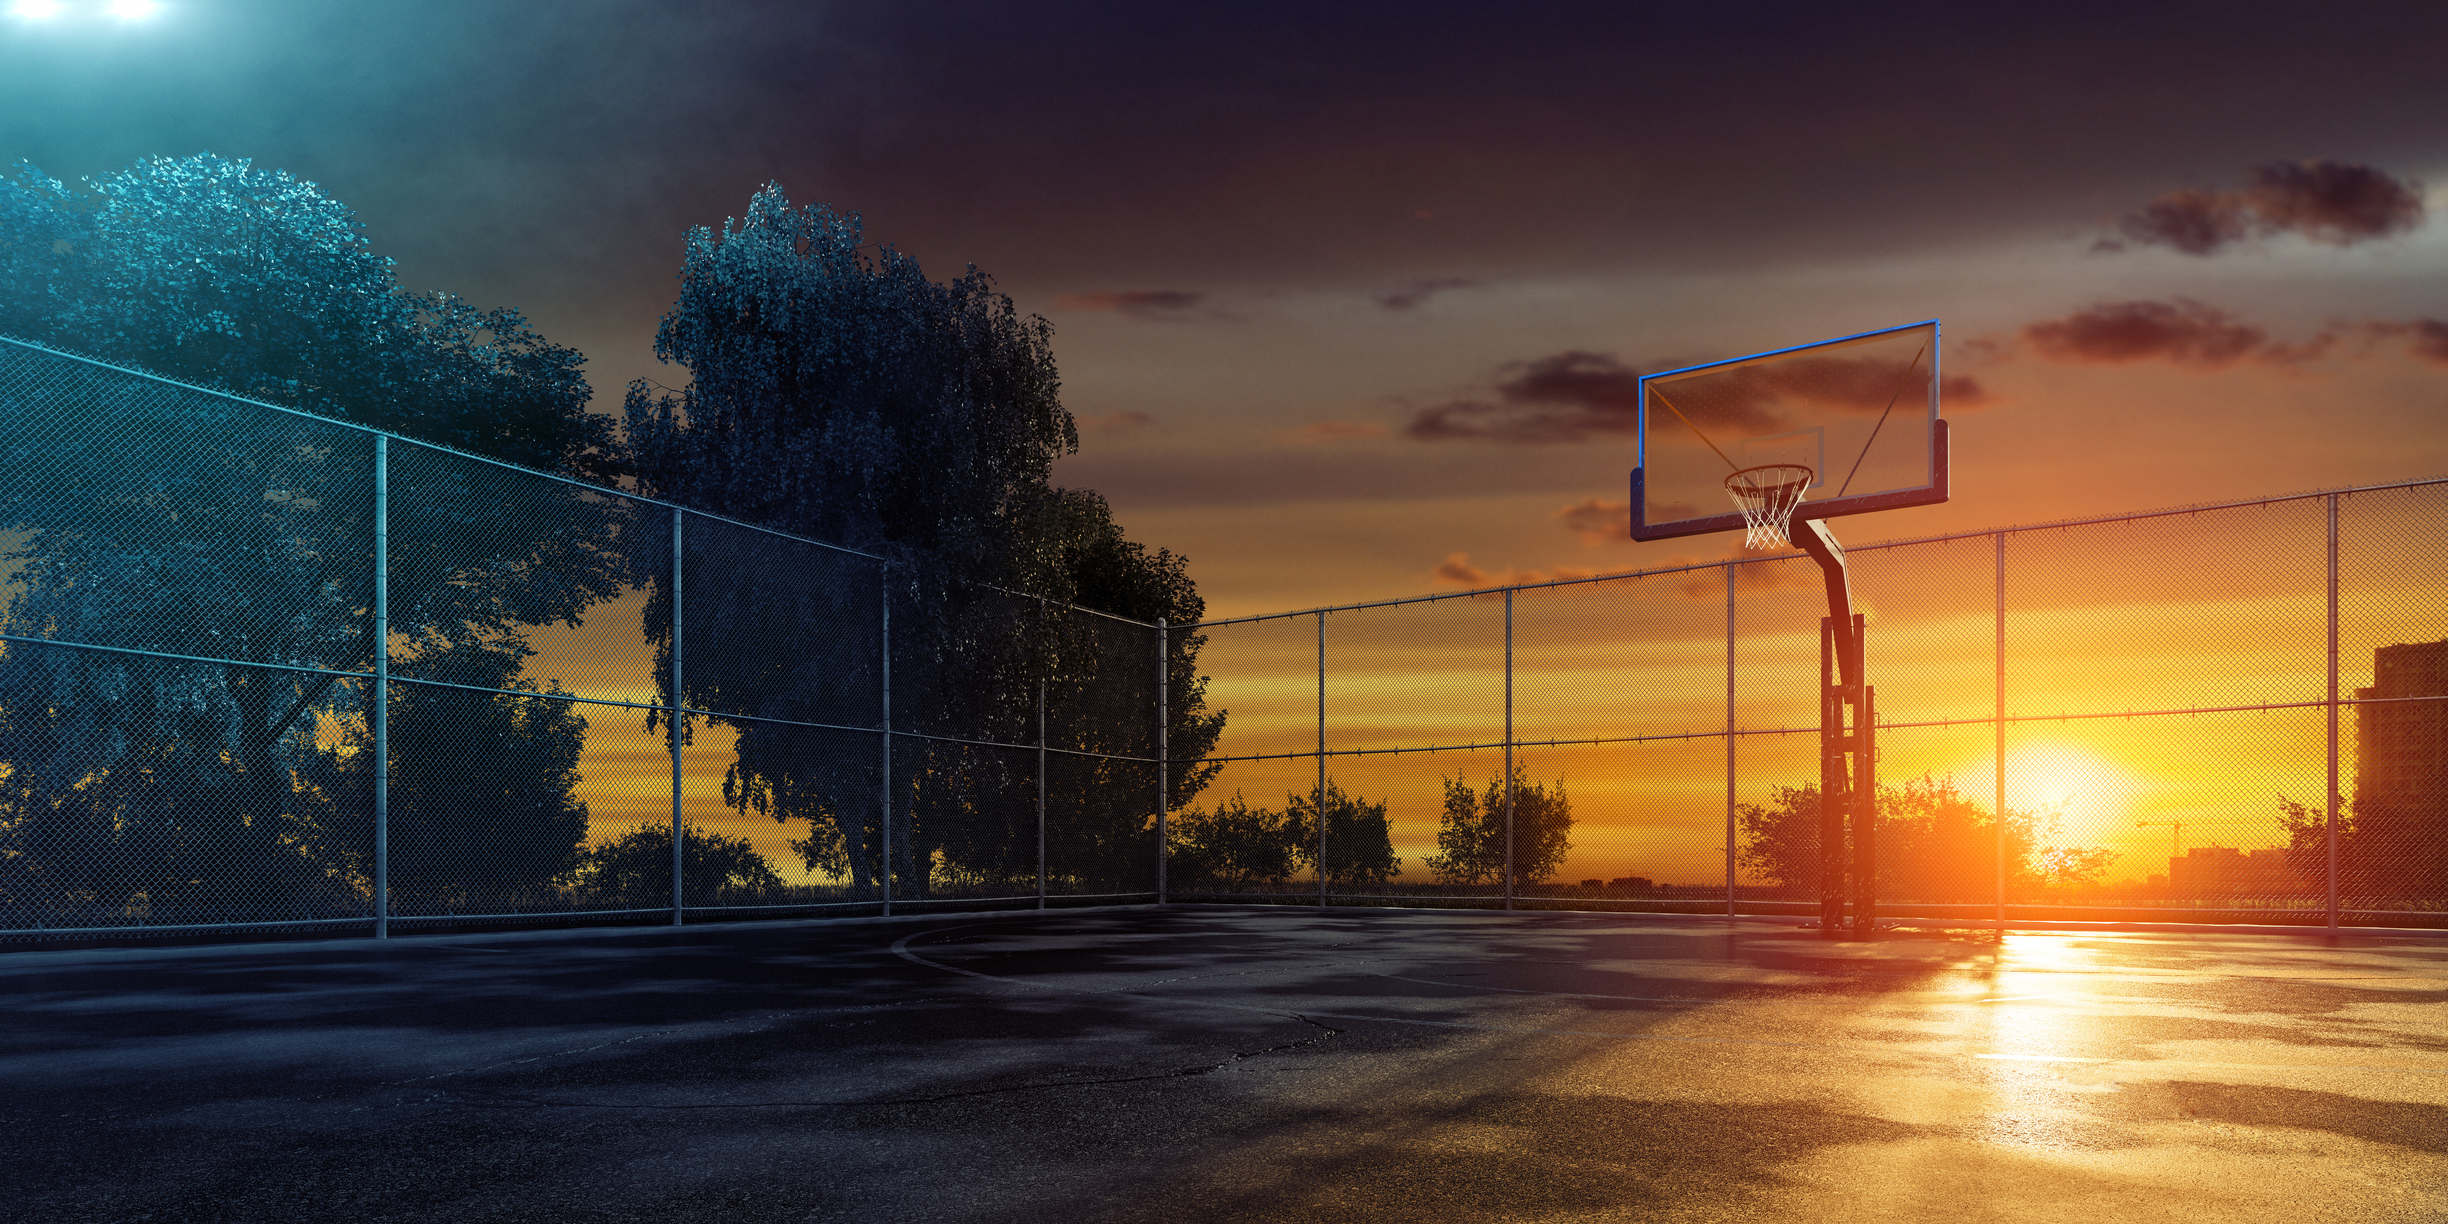 What if smart street lighting would only work if the city's basketball court was actually used? It is one of the energy-efficient applications of smart lighting.